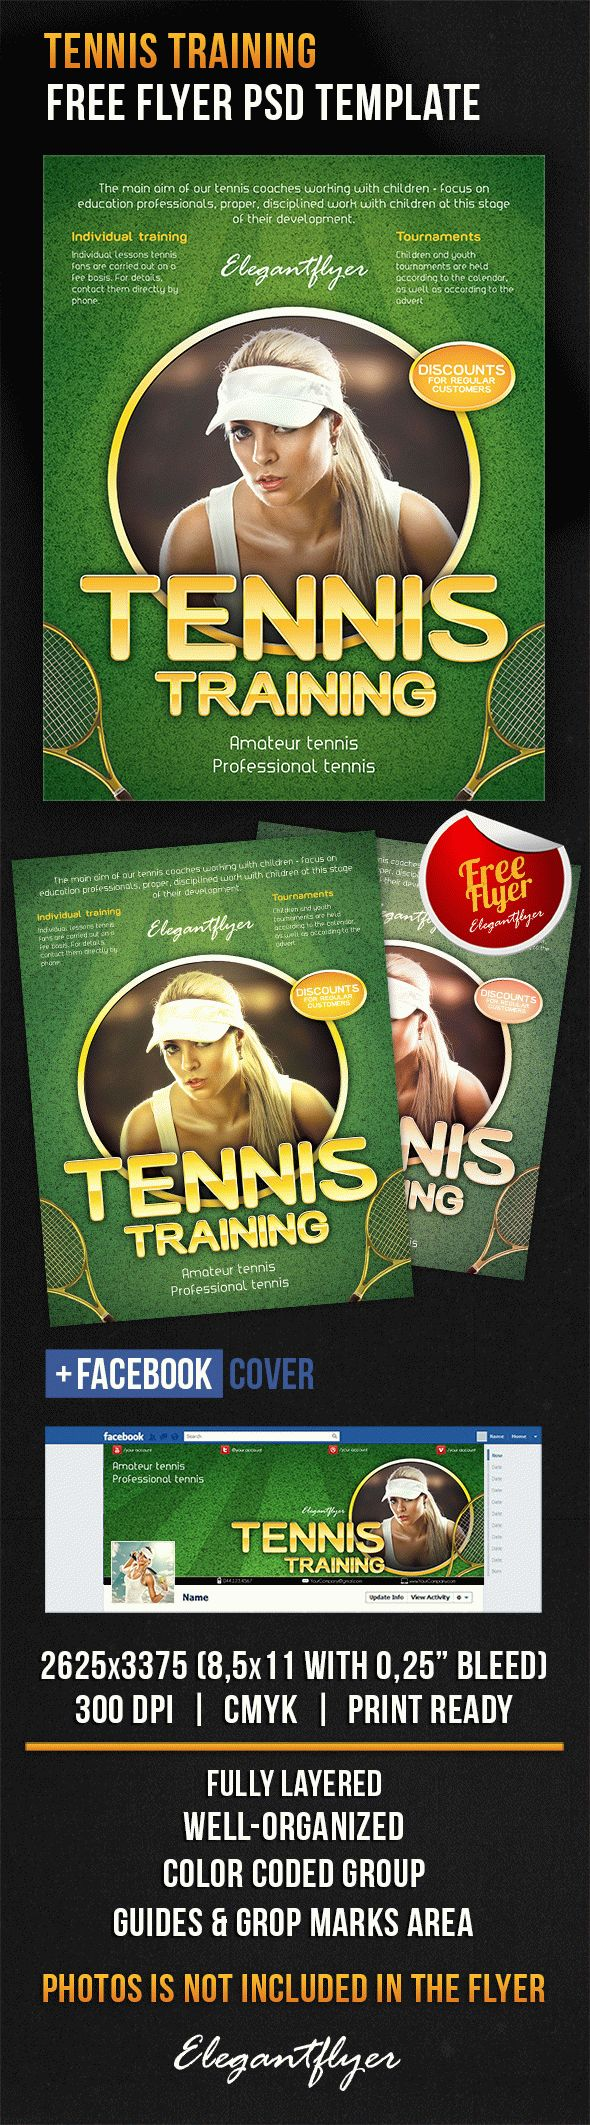 Tennis training – Free Flyer PSD Template + Facebook Cover